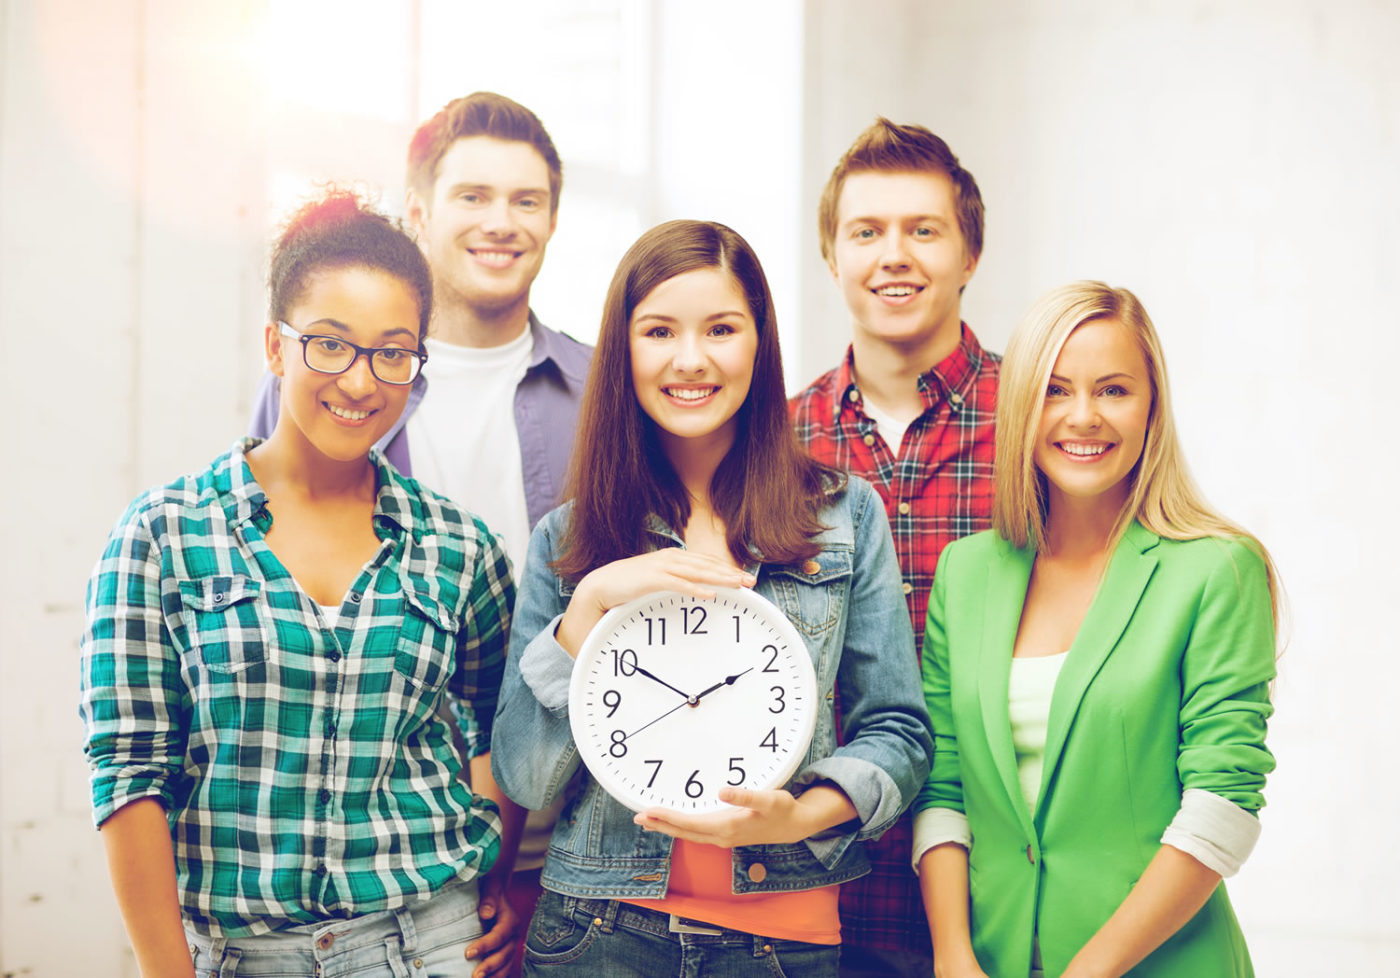 Group of five students representing education and time